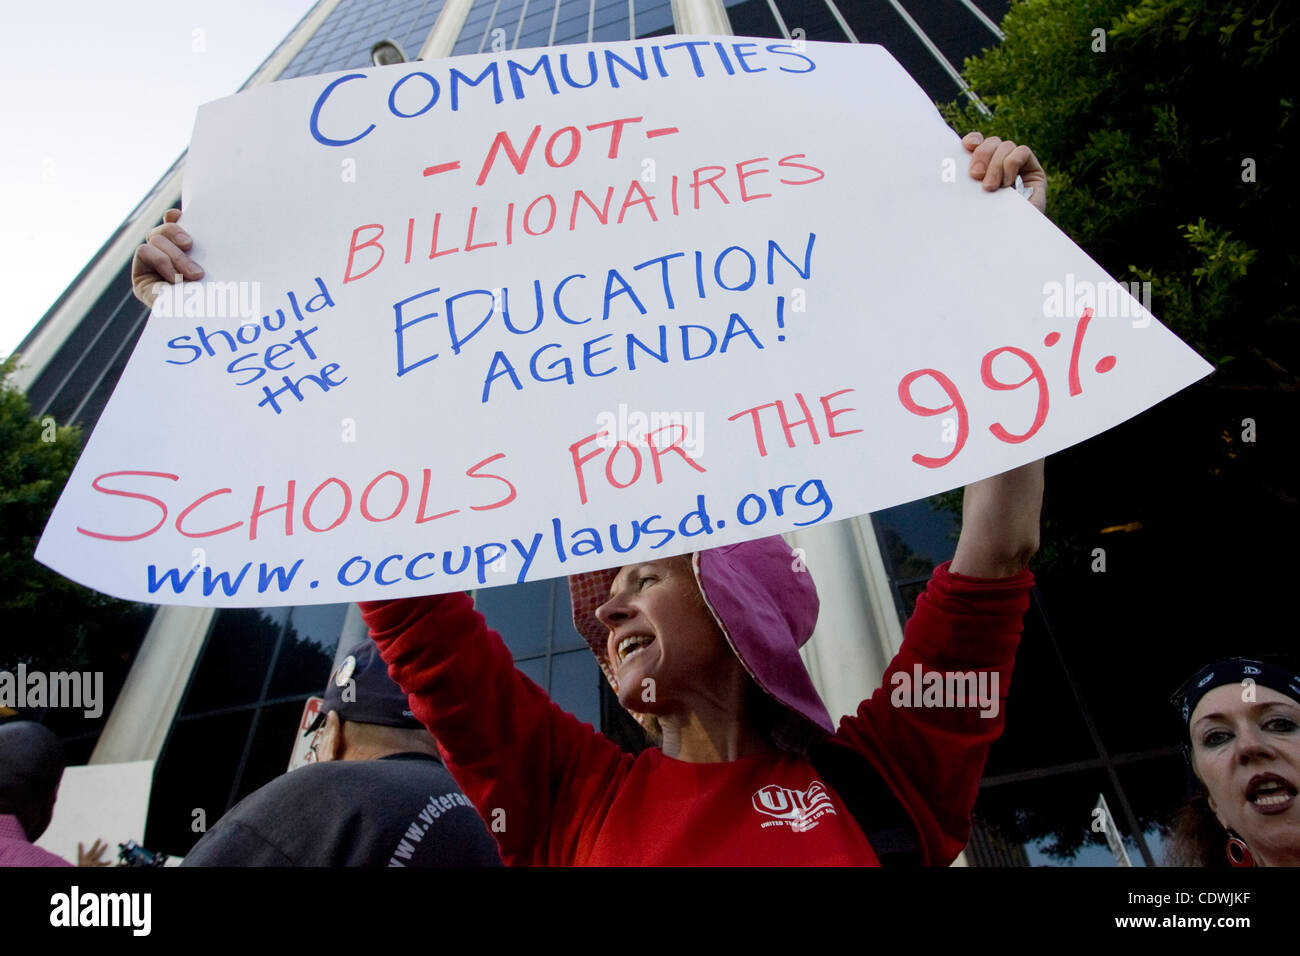 Oct. 18, 2011 - Los Angeles, California, U.S - Parents, teachers and school employees join with Occupy LA protestors - Stock Image